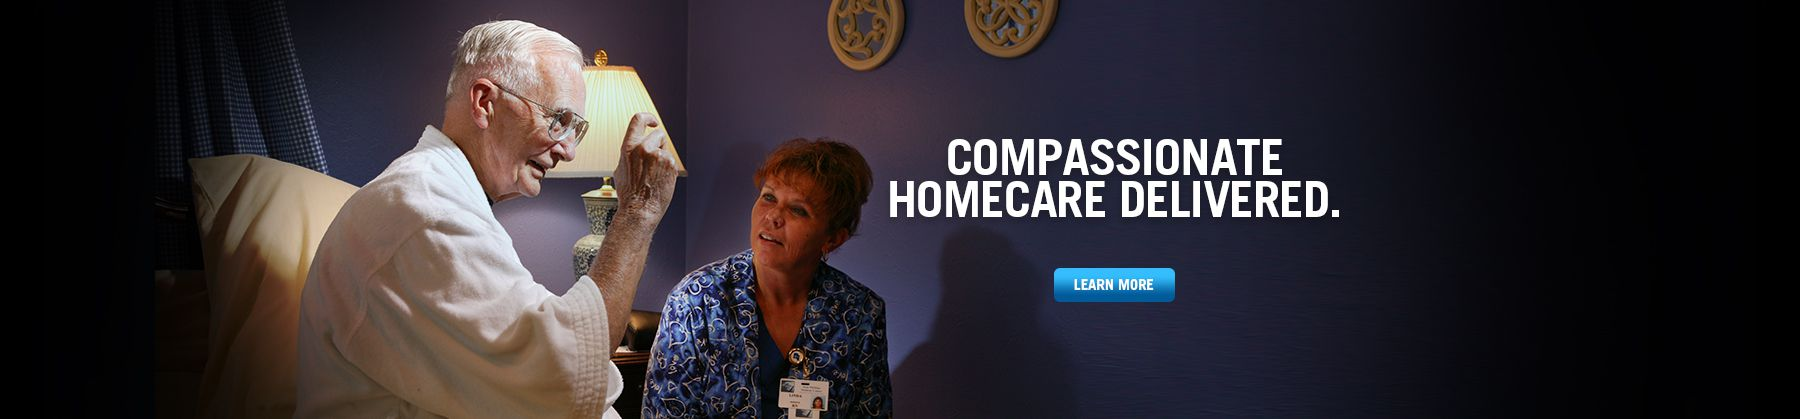 Compassionate Homecare Delivered.